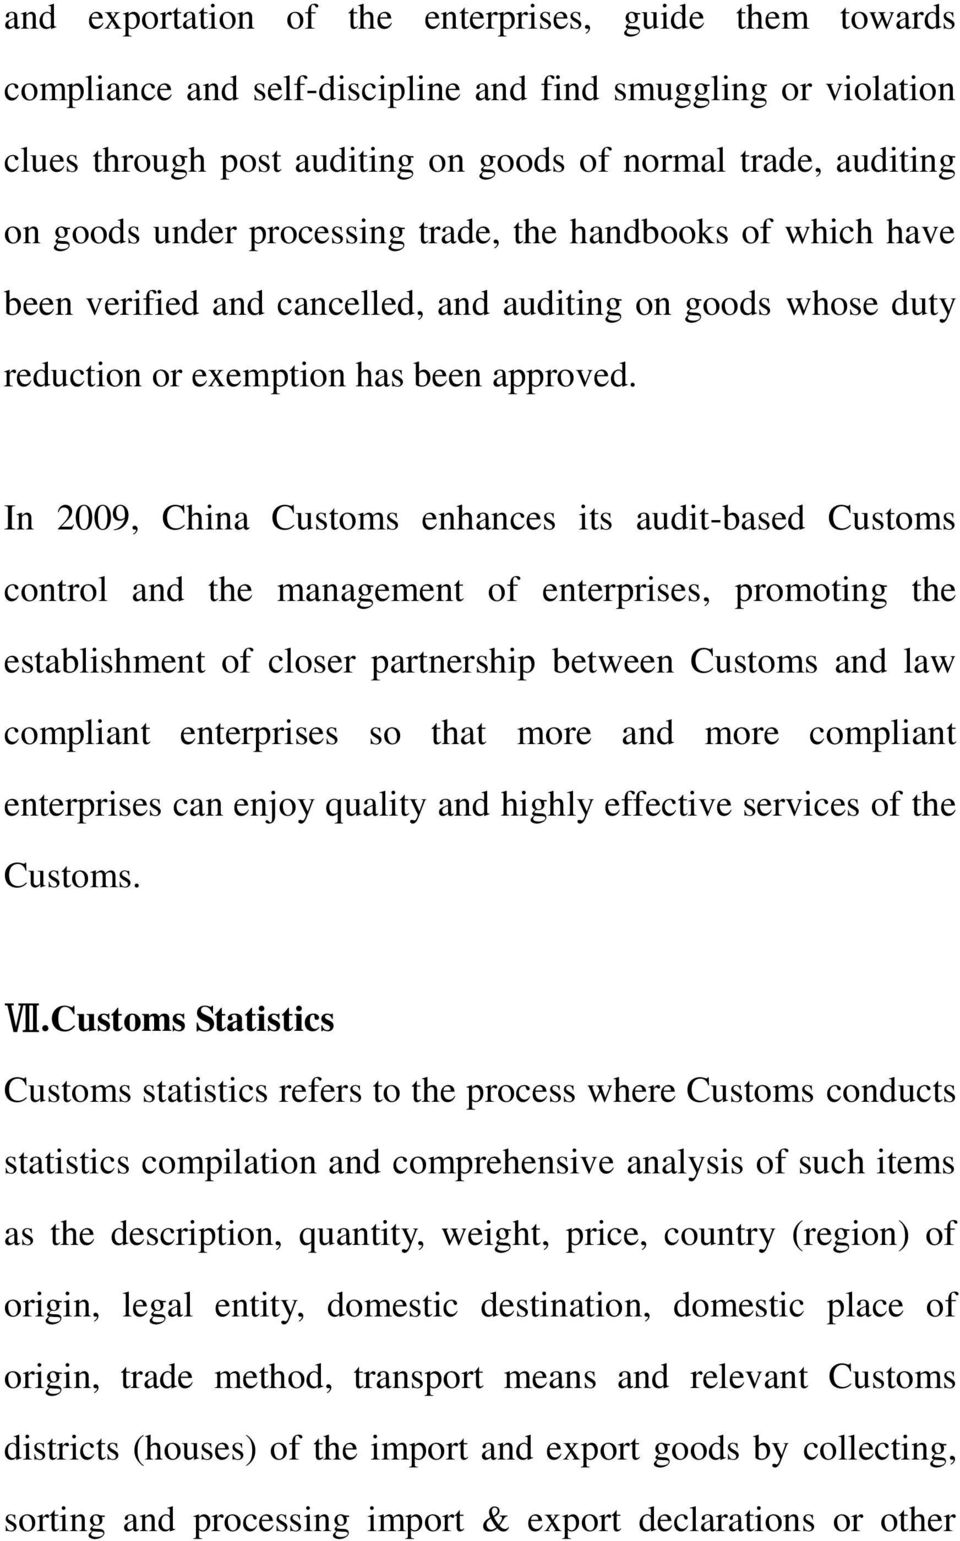 In 2009, China Customs enhances its audit-based Customs control and the management of enterprises, promoting the establishment of closer partnership between Customs and law compliant enterprises so